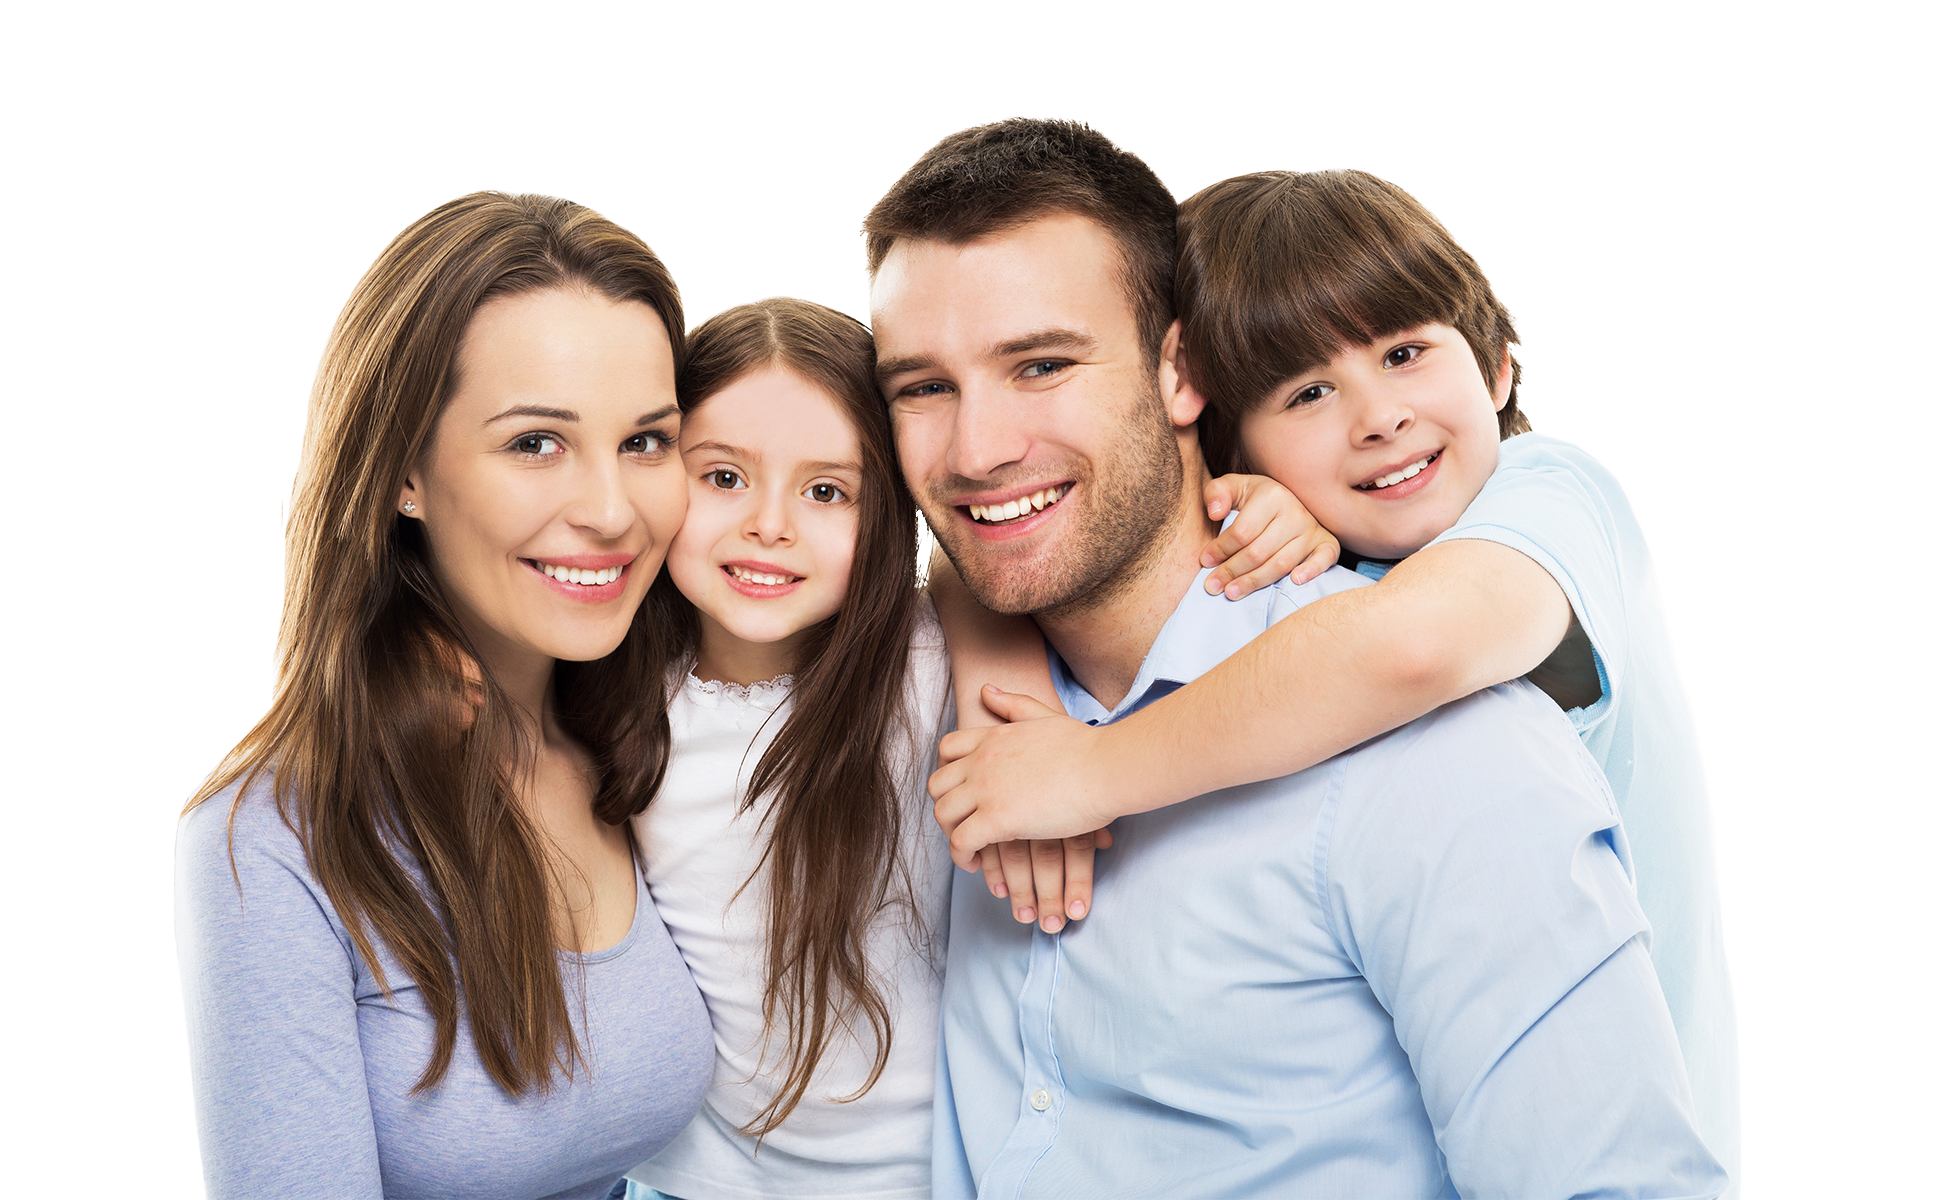 Happy Family Cutout 1950 1200.png